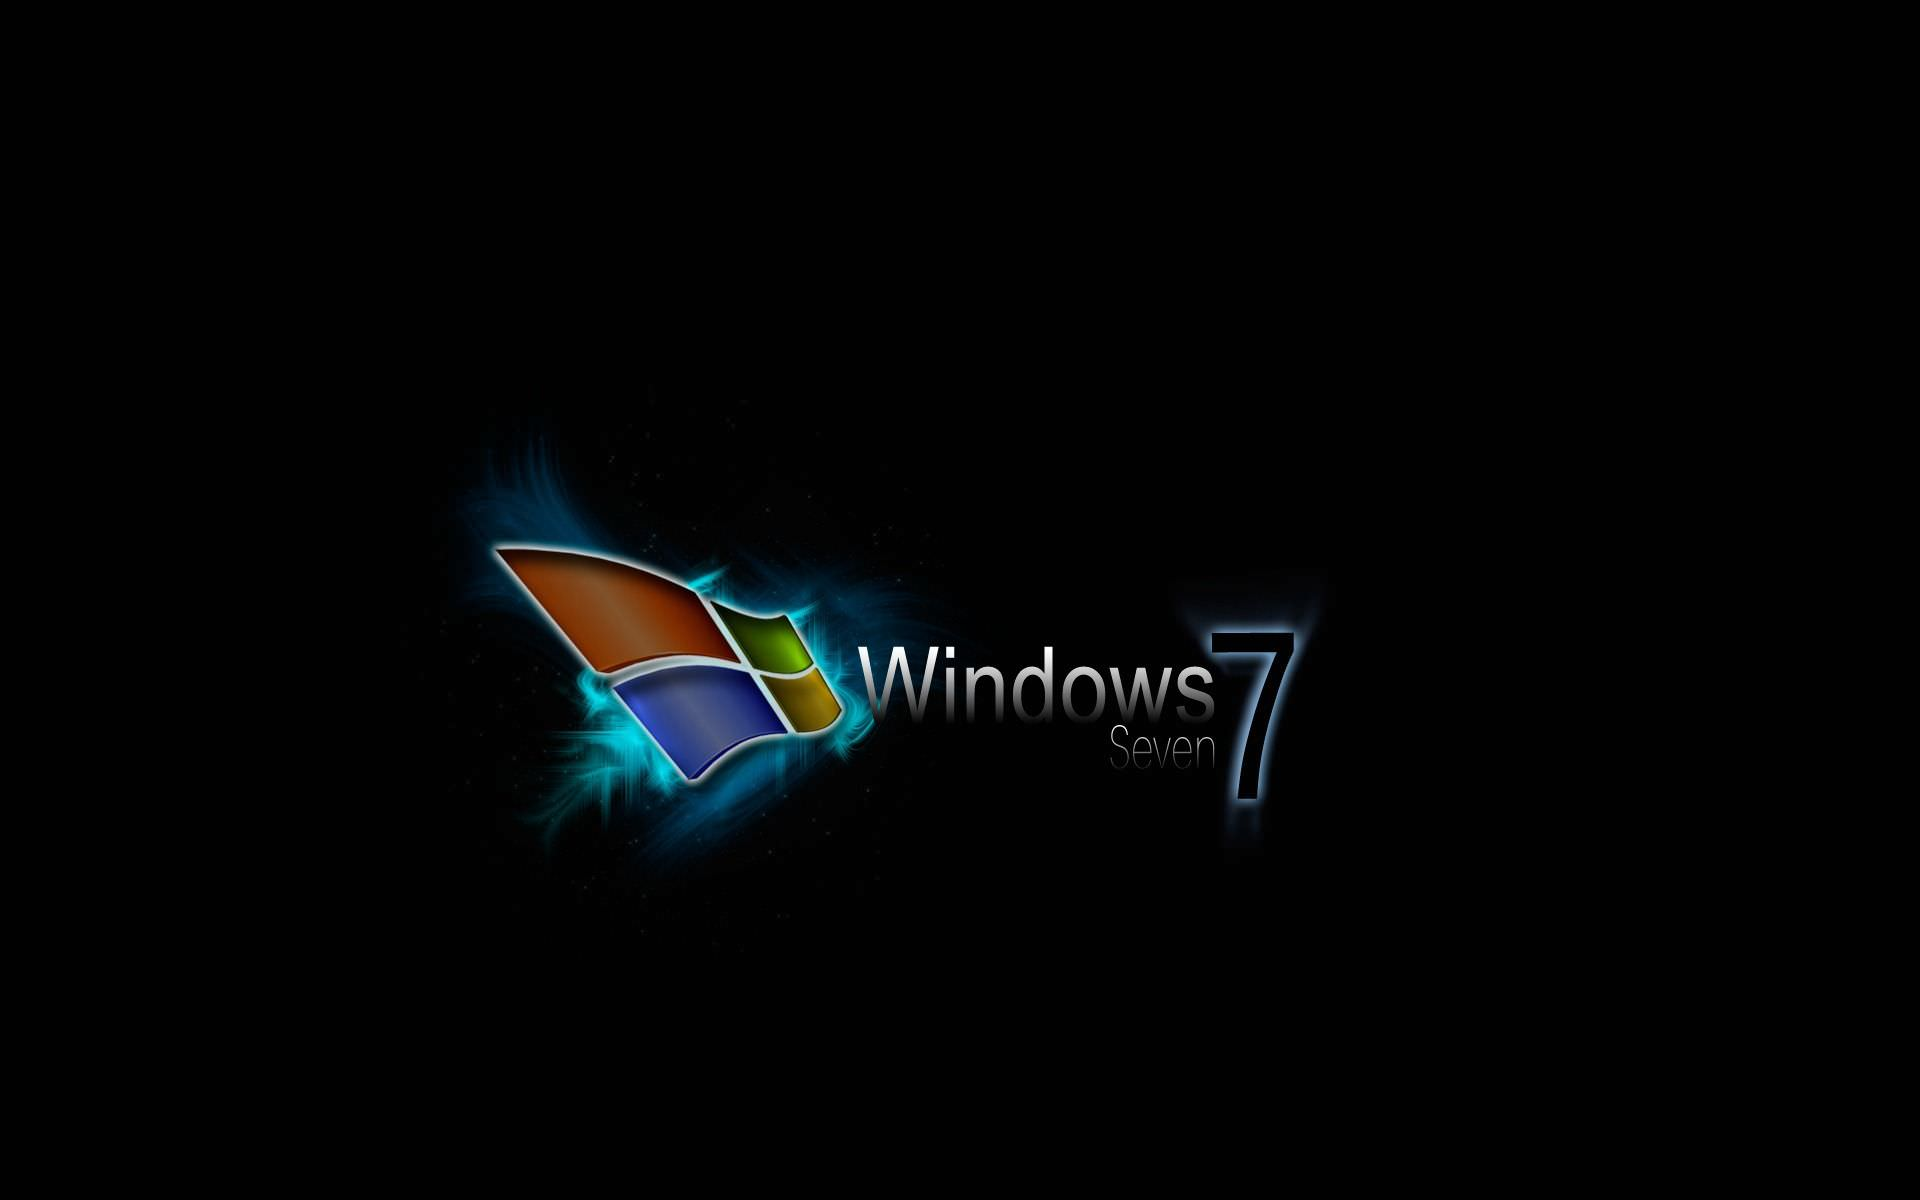 Windows 7 Wallpaper For desktop